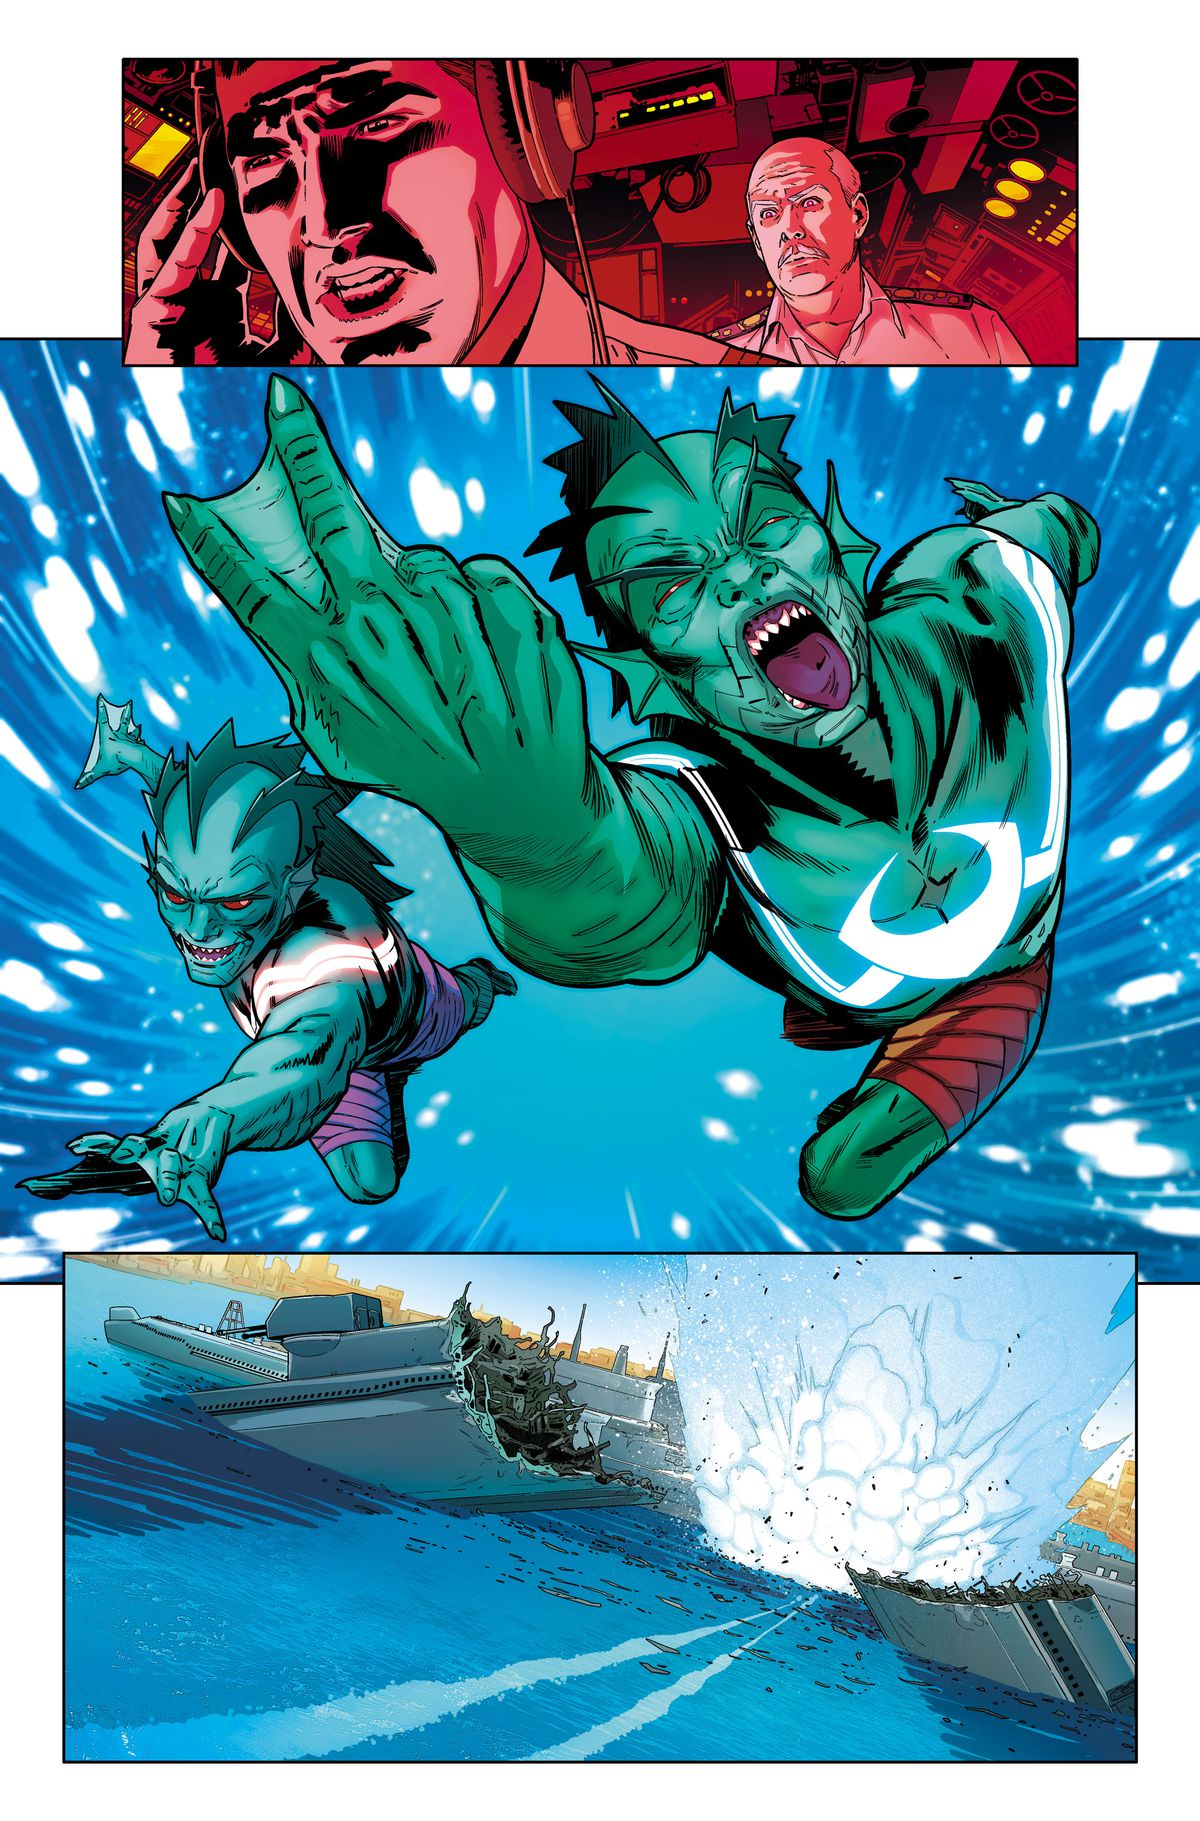 Submarine crew react as Scale and Fin swim on to the scene, flipping the underwater bird, in an unlettered page from Suicide Squad #1, DC Comics (2019).